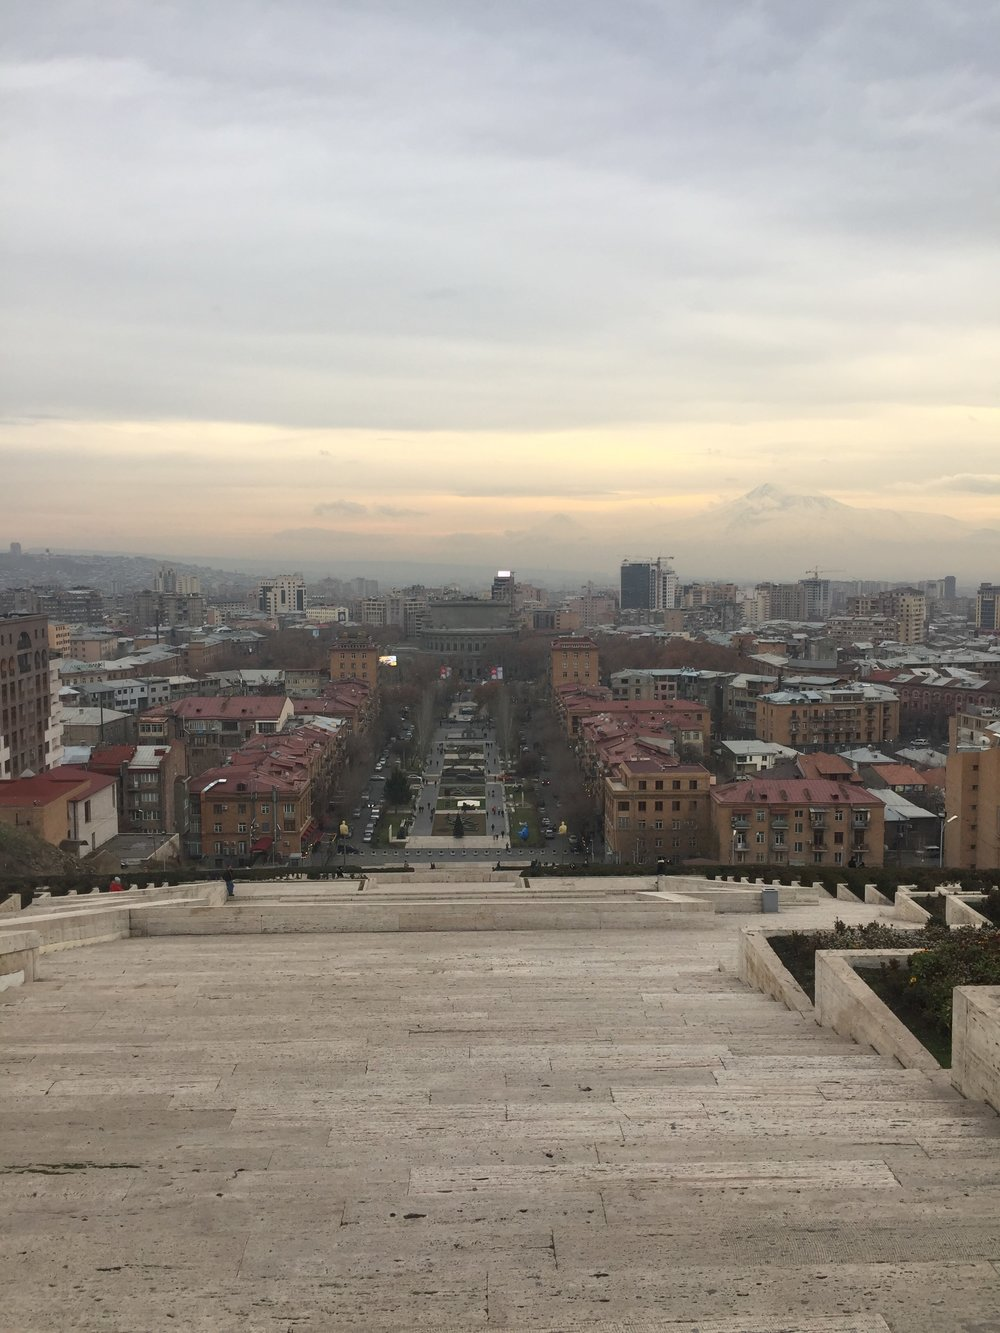 The Cascade looking over Yerevan with Mt. Ararat in the background.